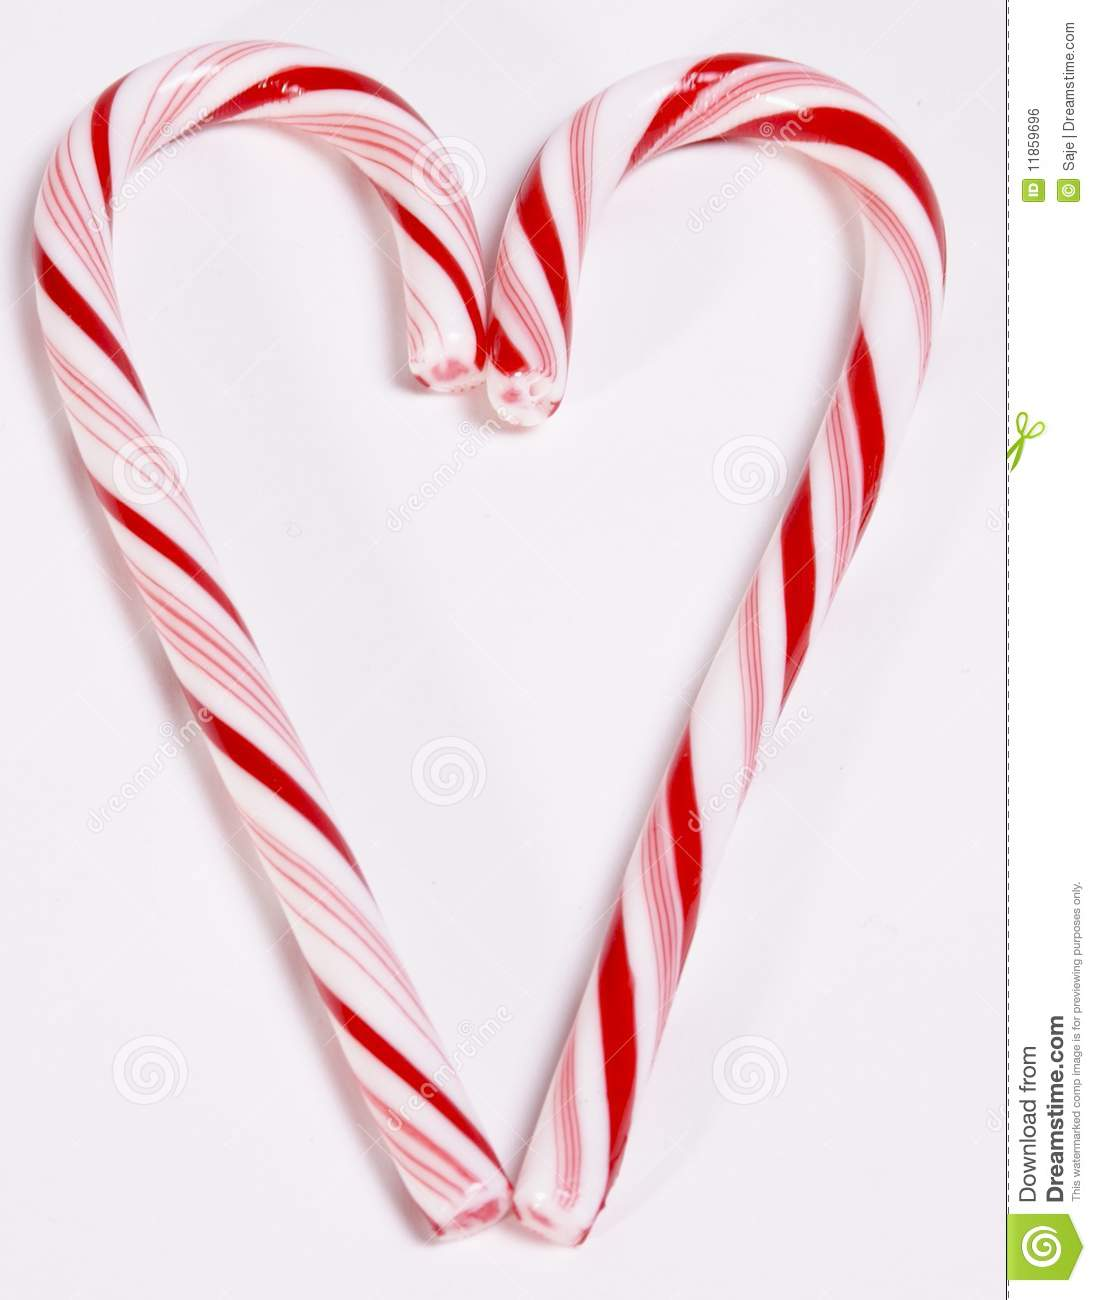 Candy cane heart stock photo image of holiday affection